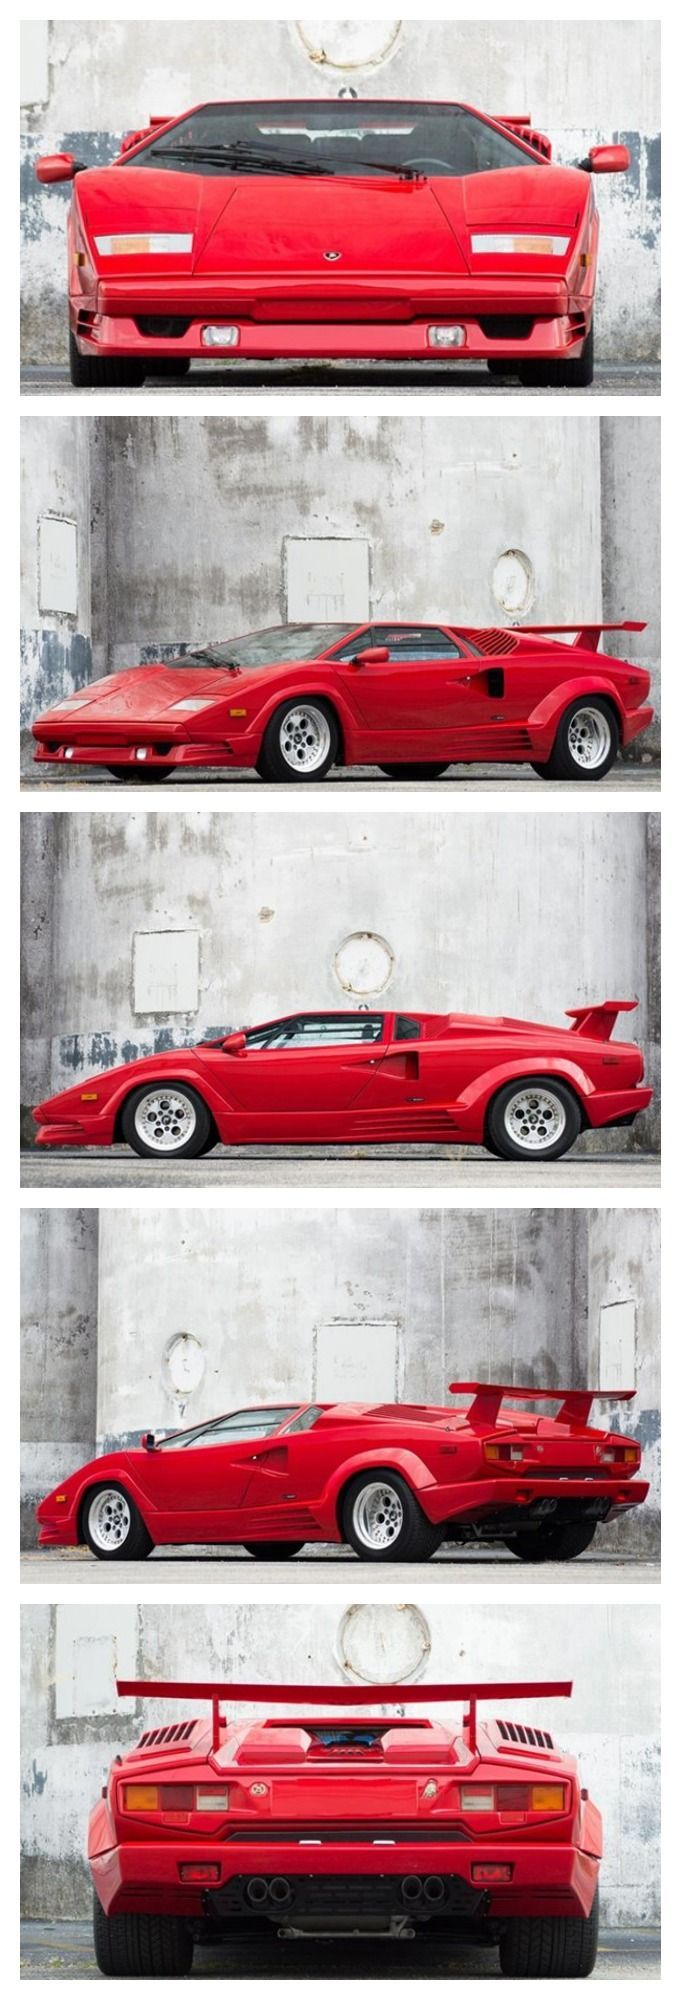 lamborghini countach countach 25th anniversary anniversaries 25th anniversary and lamborghini. Black Bedroom Furniture Sets. Home Design Ideas